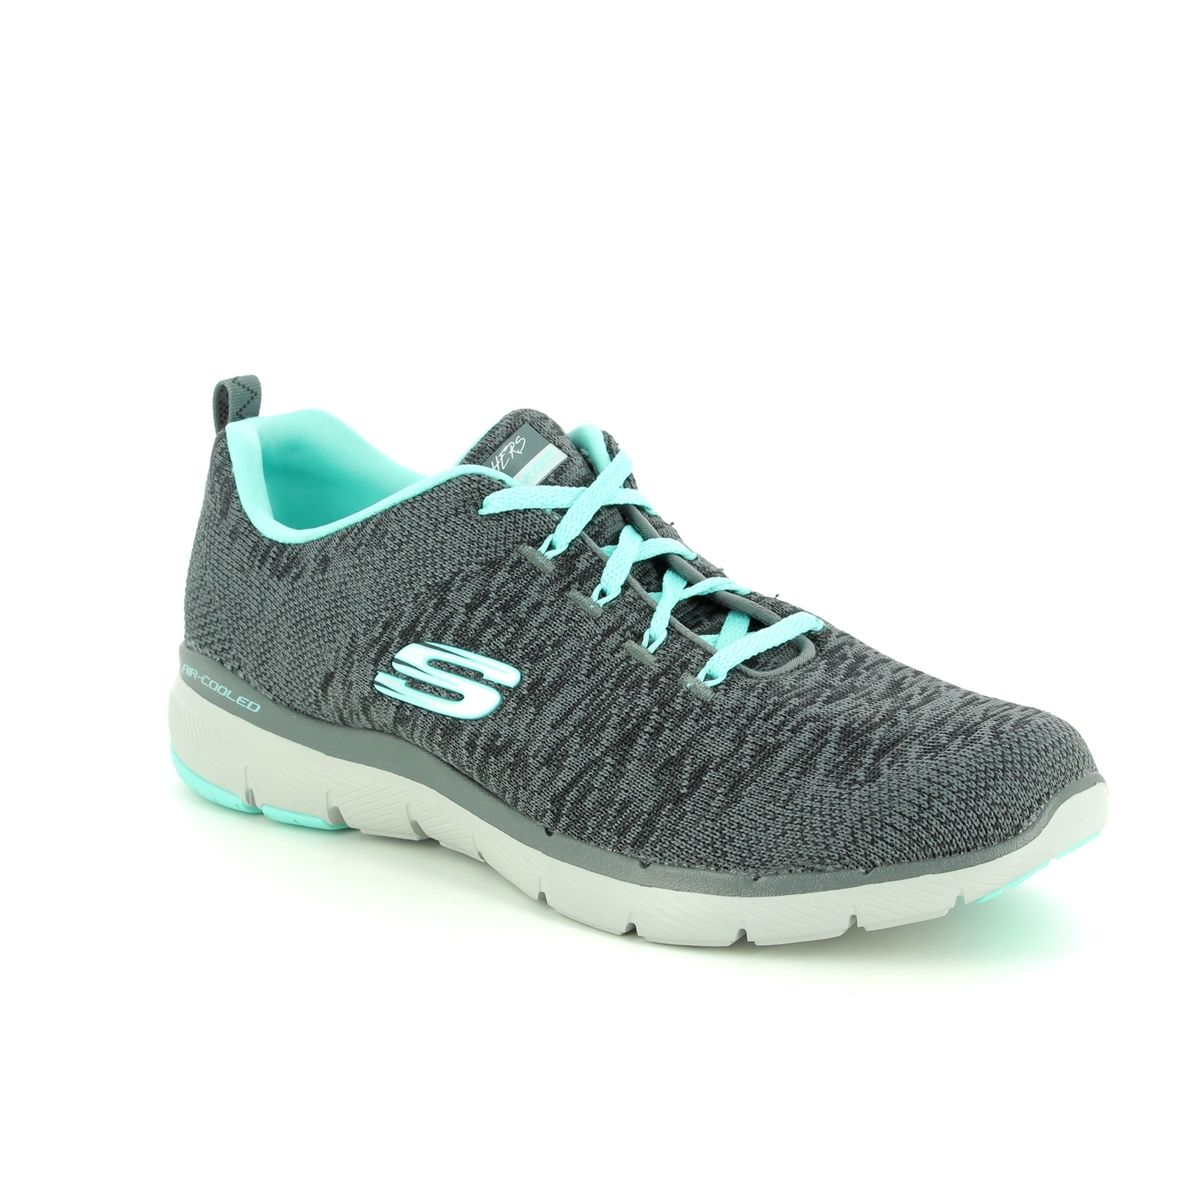 905e060b00d Skechers Flex Appeal 3 13062 CCLB Charcoal trainers